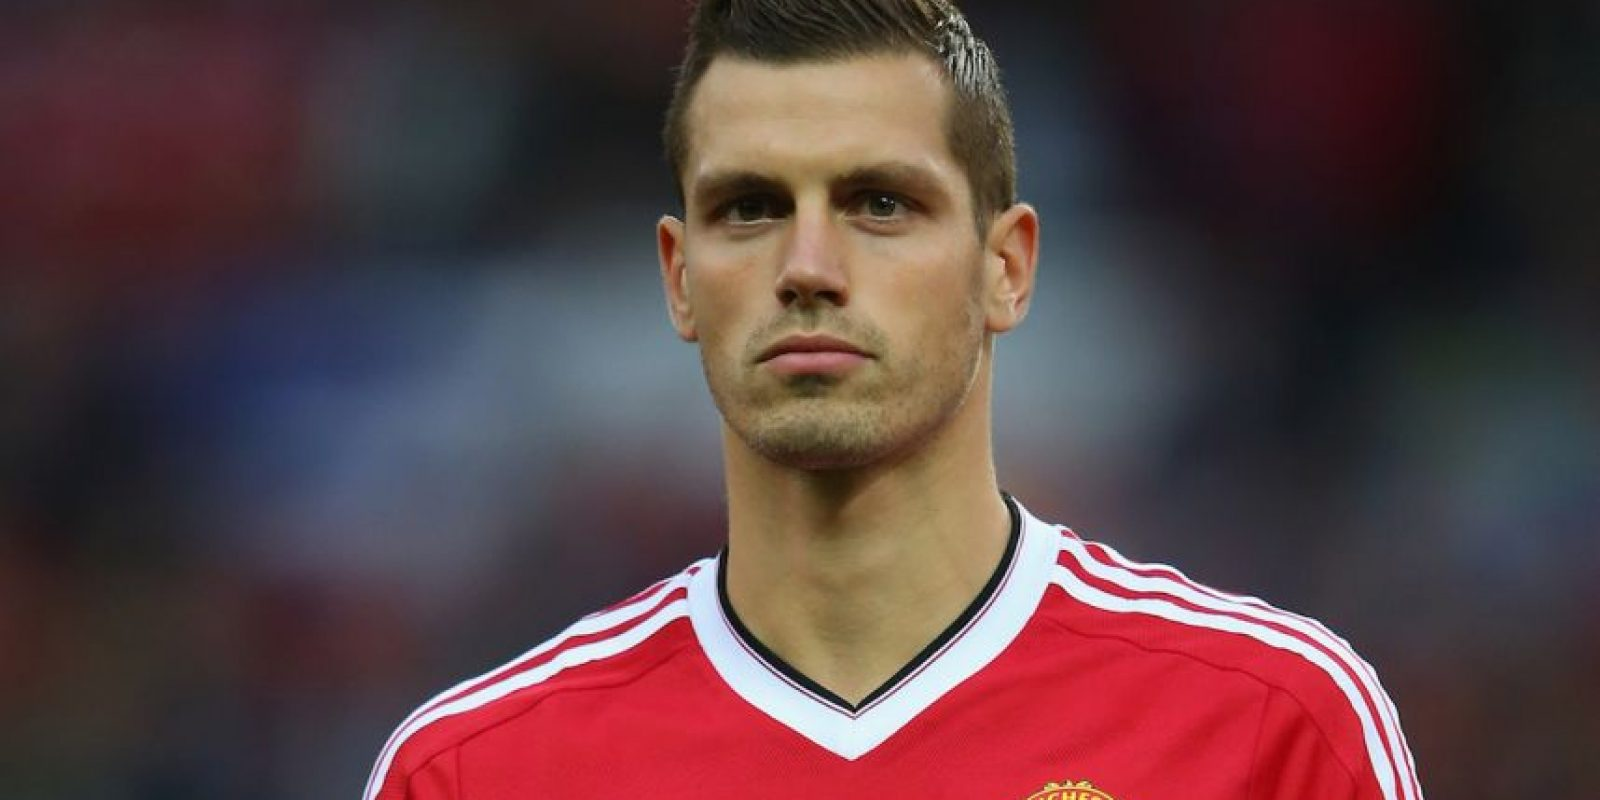 7. Morgan Schneiderlin (Manchester United) = 35 millones de euros. Foto: Getty Images